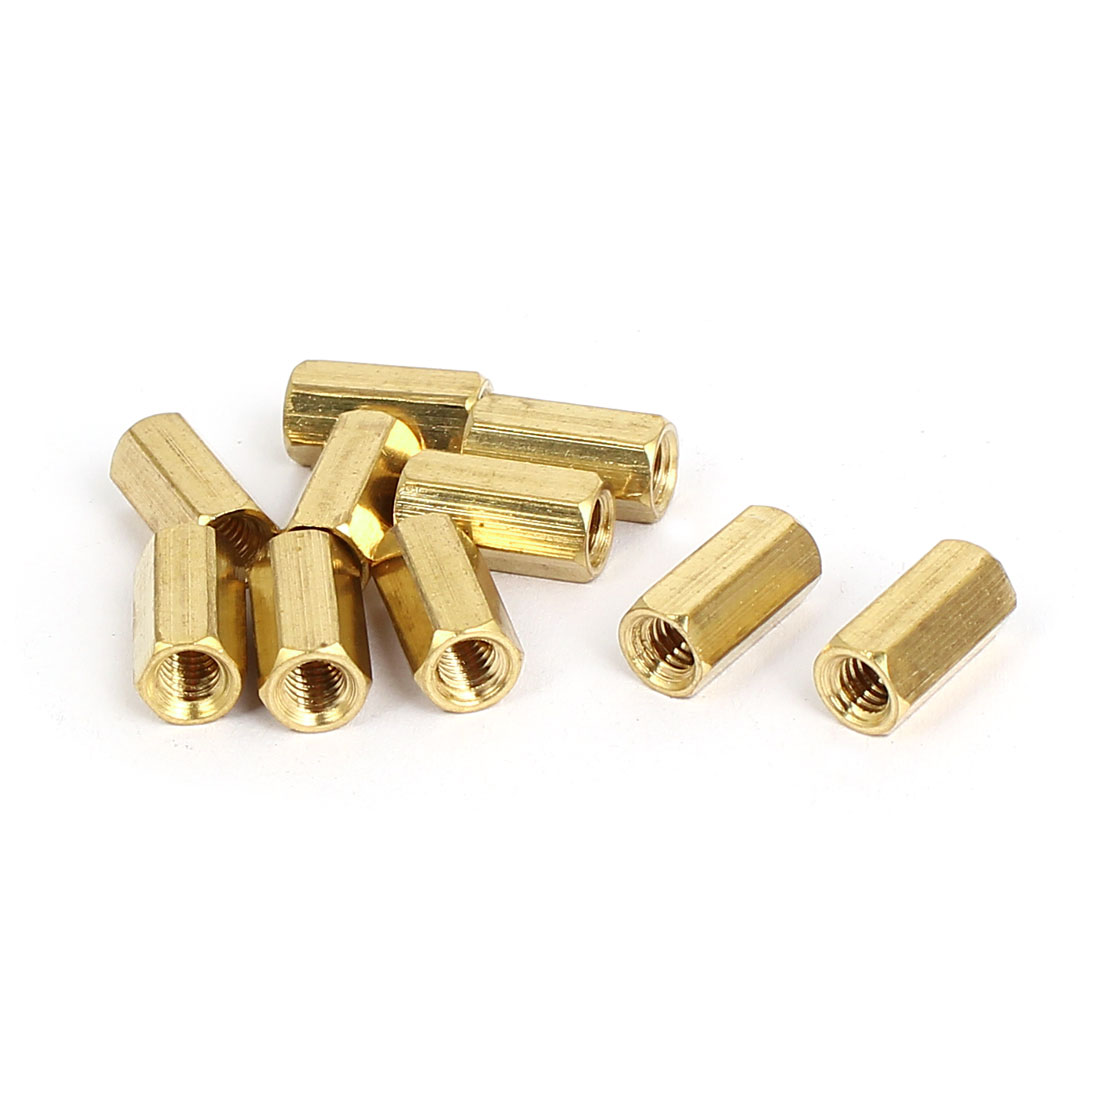 M4x12mm Brass Hex Hexagonal Female Threaded Standoff Spacer Pillars 10pcs